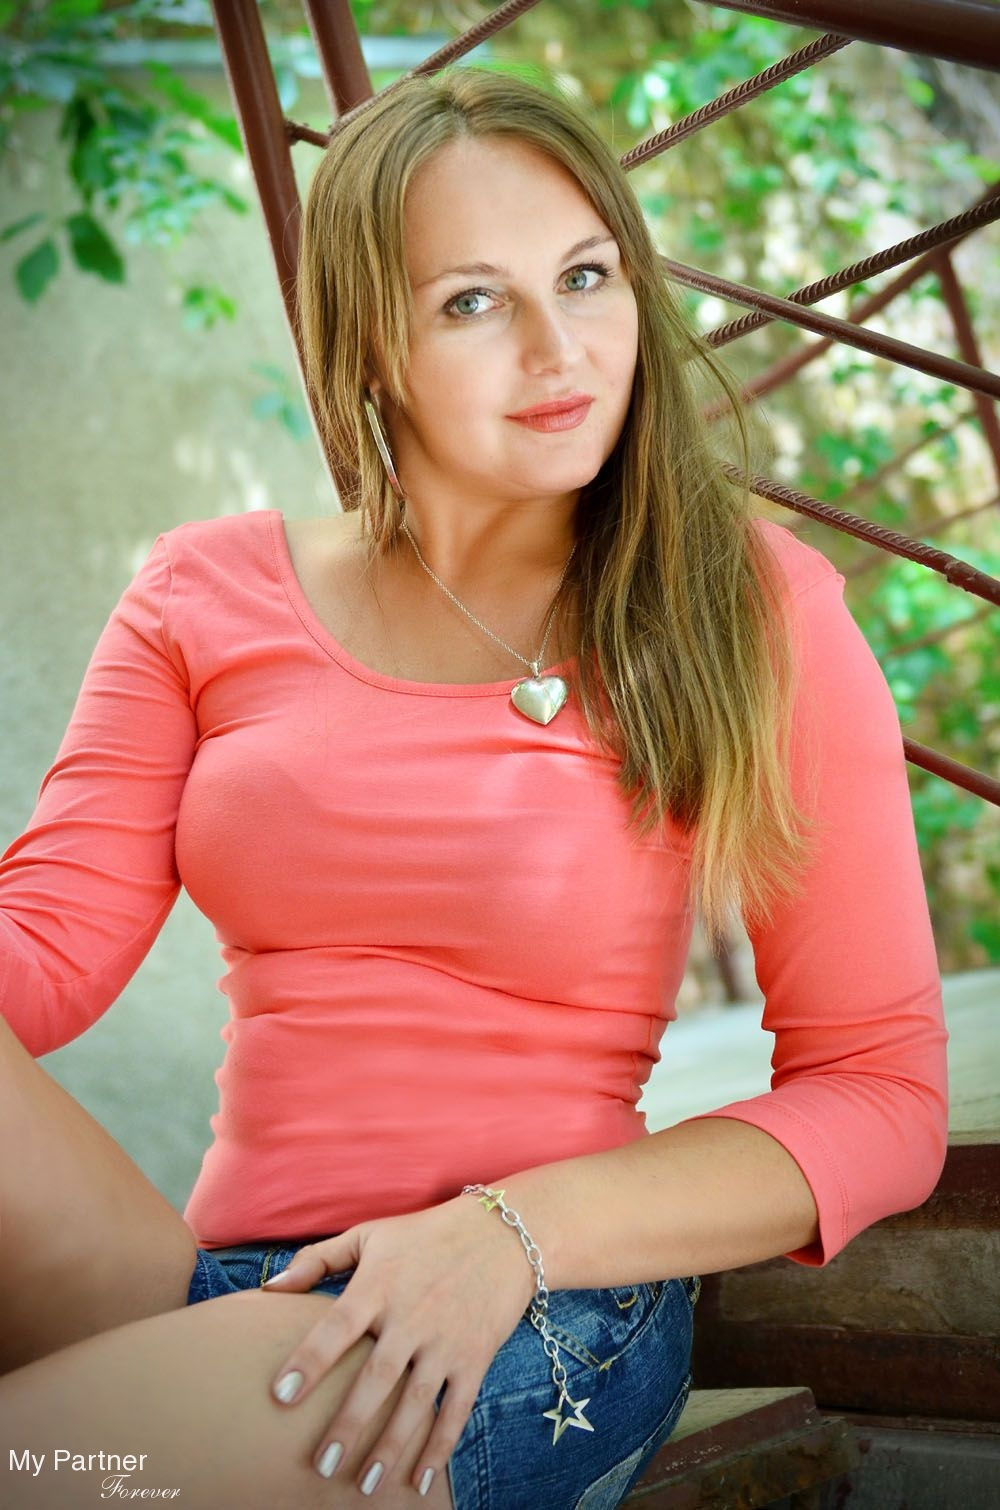 Single Russian Women Dating Site, Meet Beautiful Ukrainian Girls, Belarus Ladies